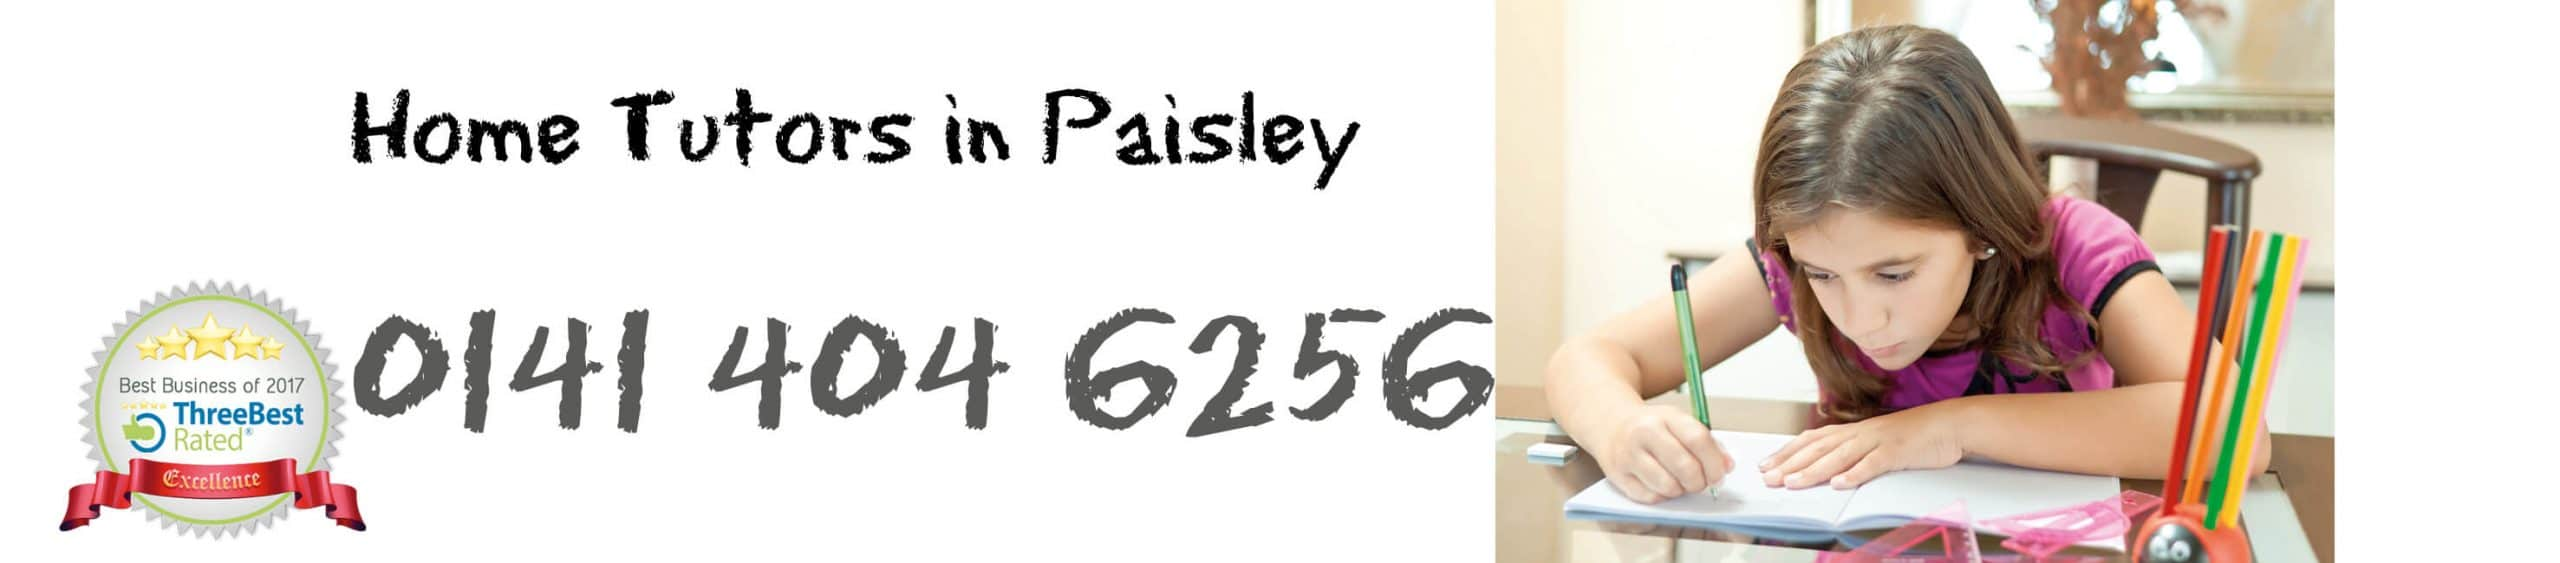 Home Tutors in Paisley